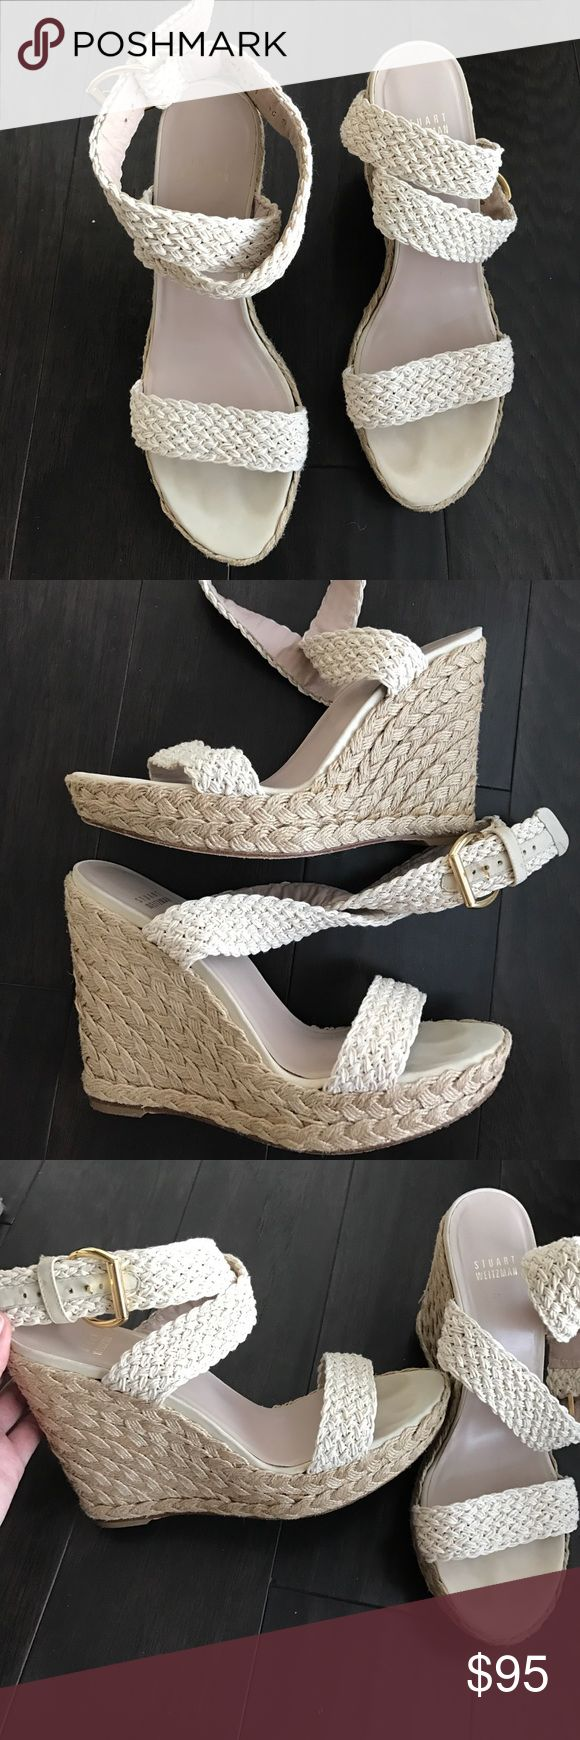 Stuart Weitzman Wedges Great neutral wedges for spring and summer. Size 10 M. Very gently worn. These wrap up the ankle. The straps, sides, and soles are in great condition. Stuart Weitzman Shoes Wedges